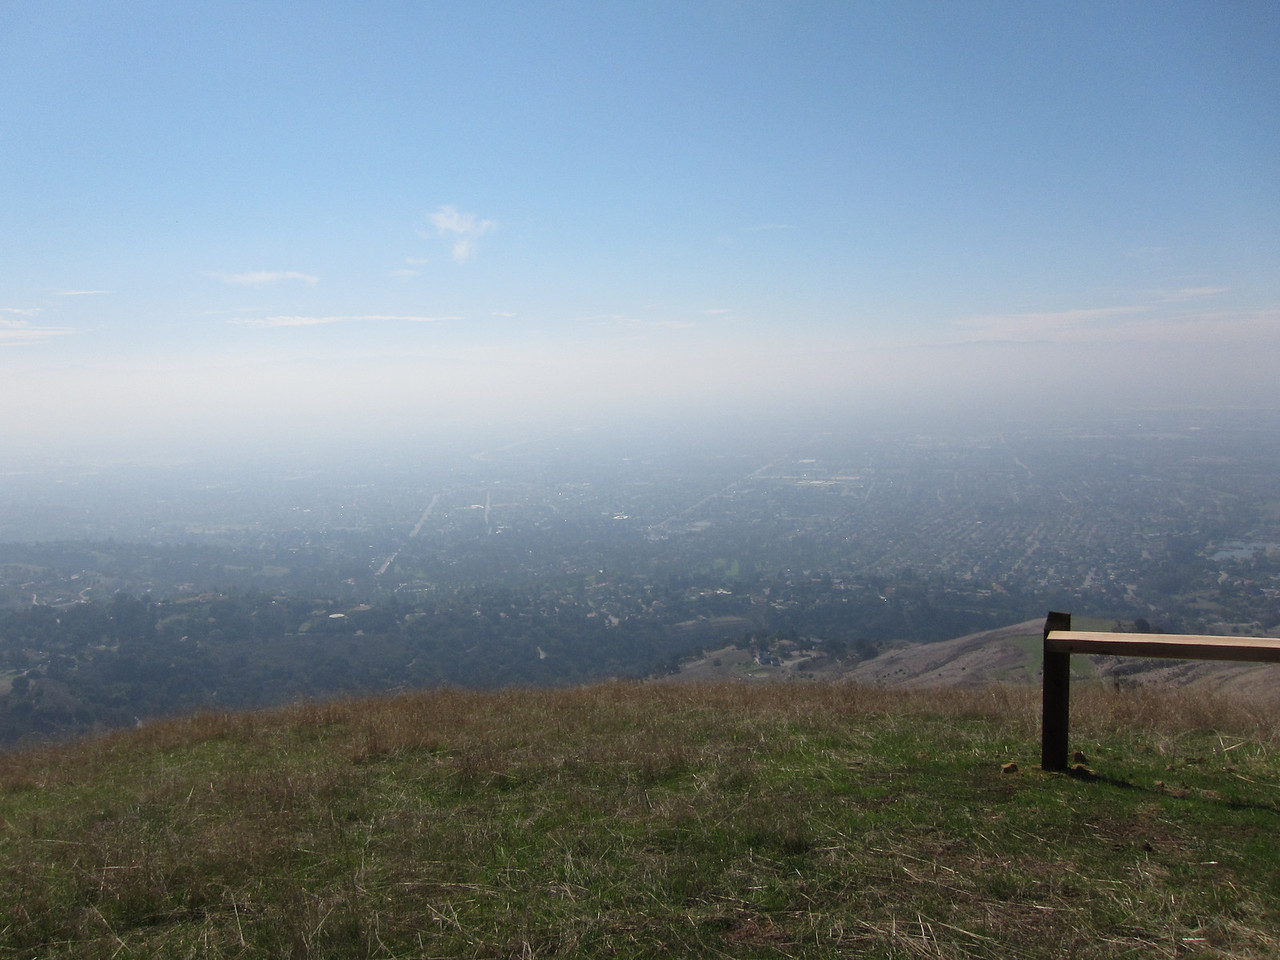 Santa Clara Valley, too bad it was a hazy day.